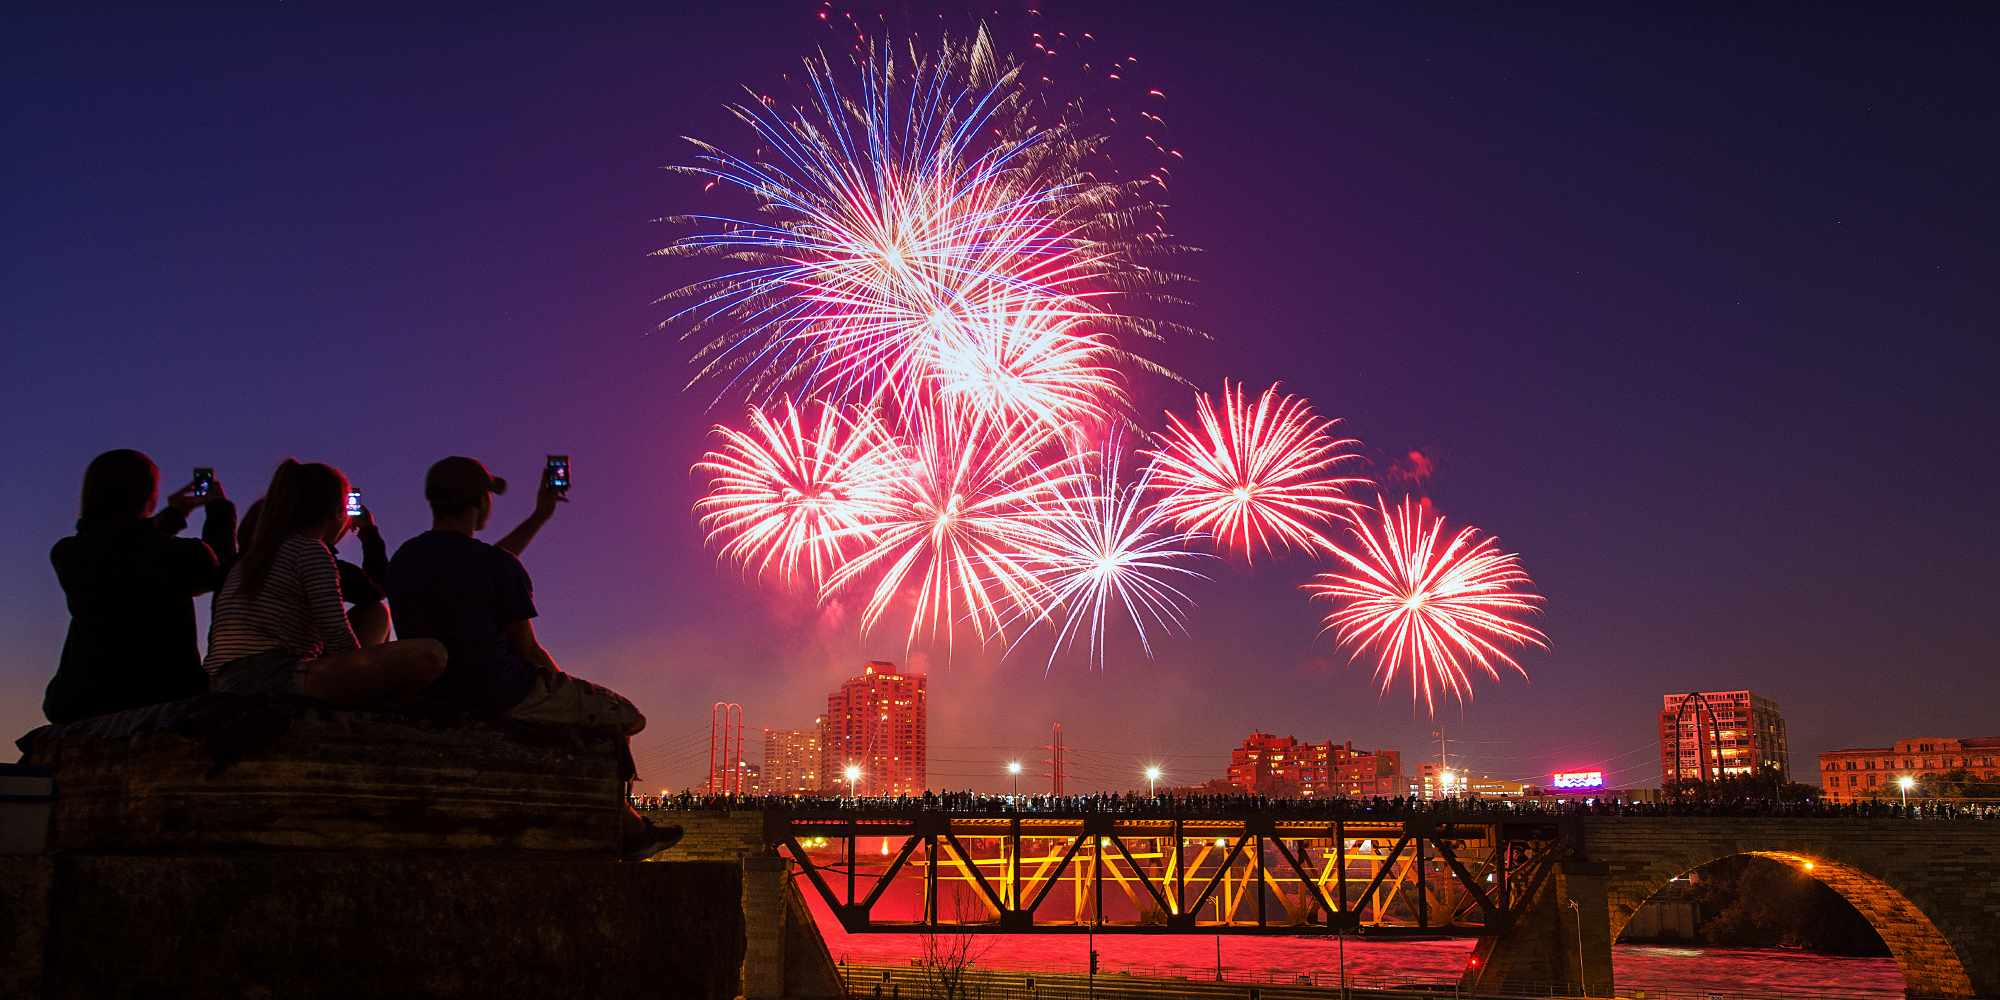 10 Best 4th Of July Fireworks